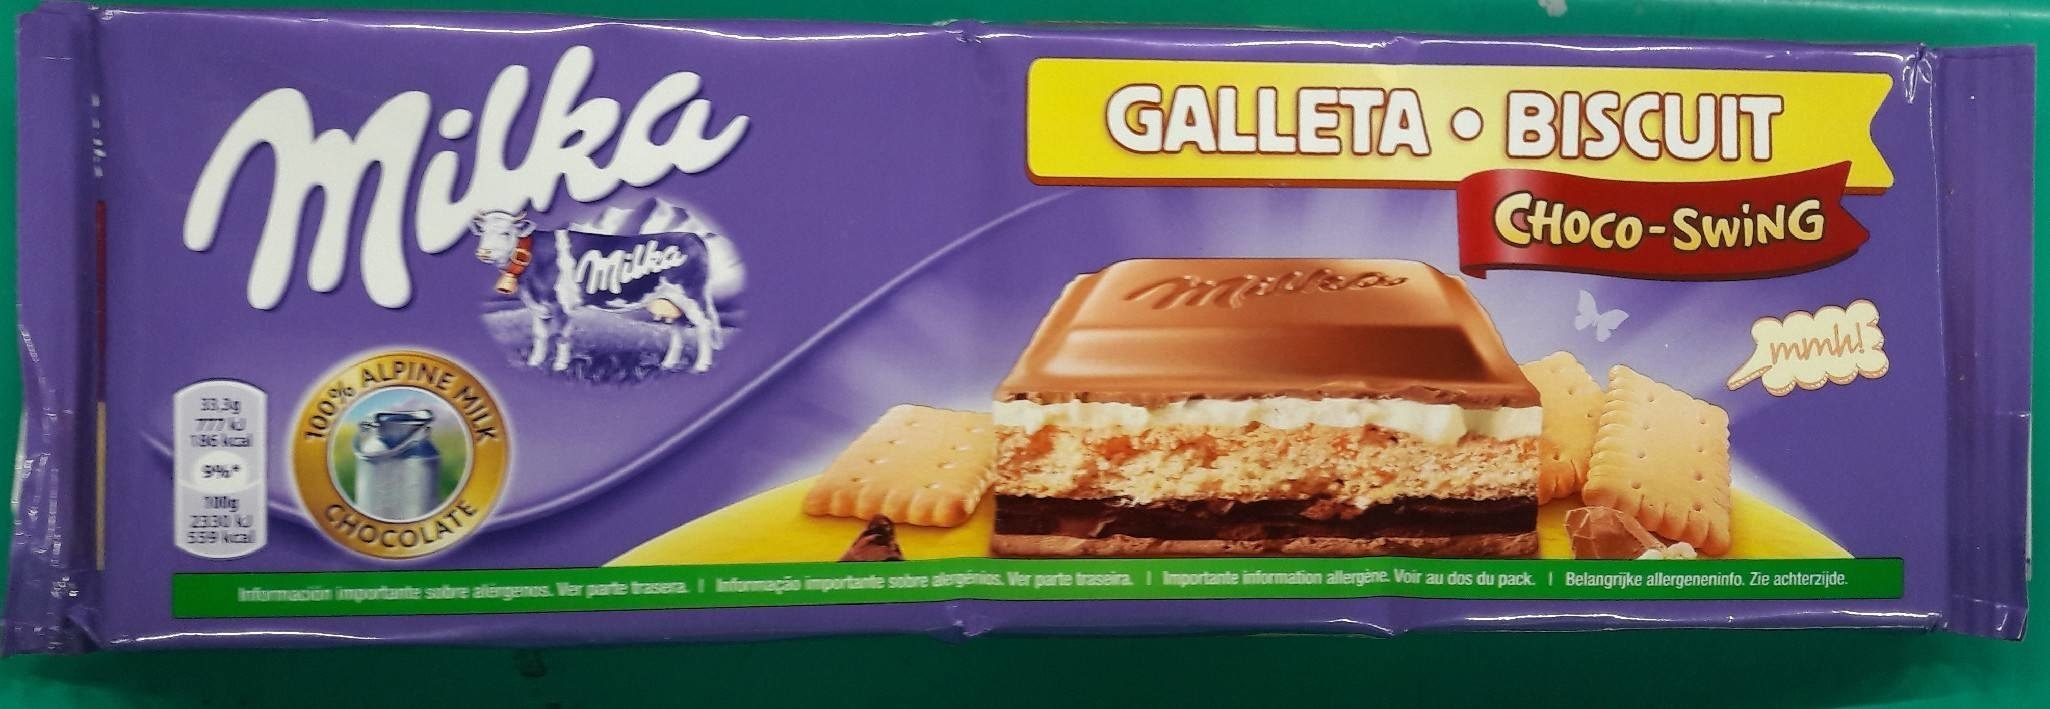 Galeta • Biscuit Choco-Swing - Producto